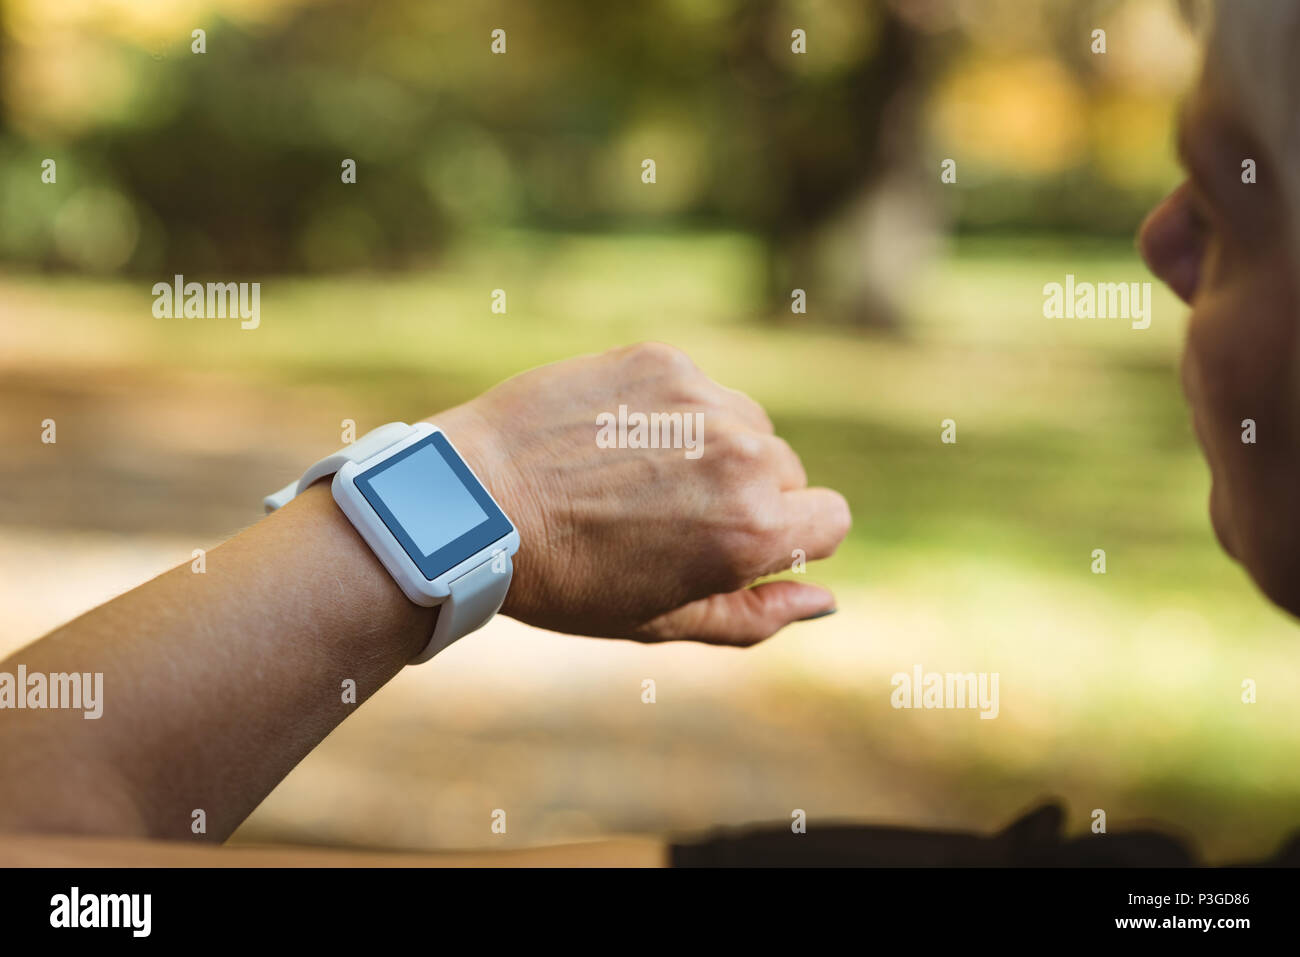 Senior woman using a smart watch in a park on a sunny day - Stock Image